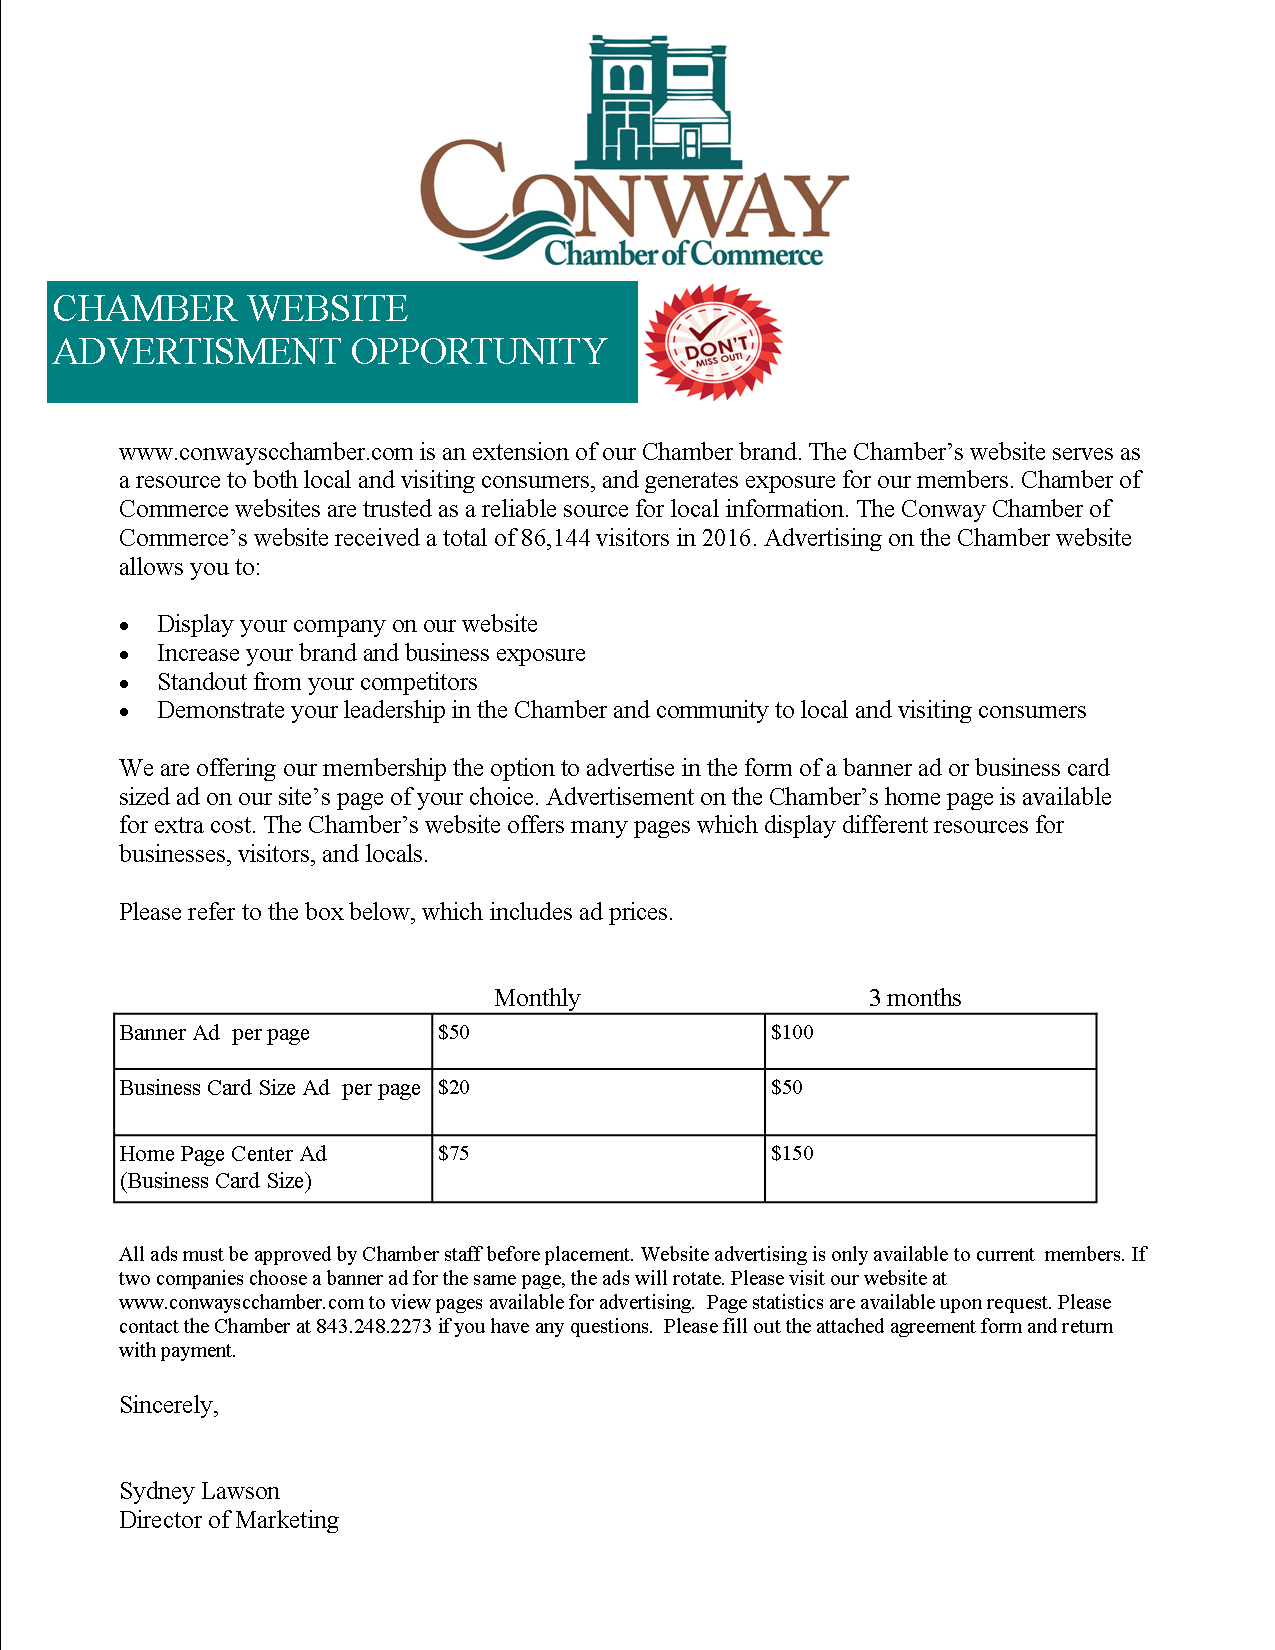 website advertisement letter | Conway Chamber of Commerce